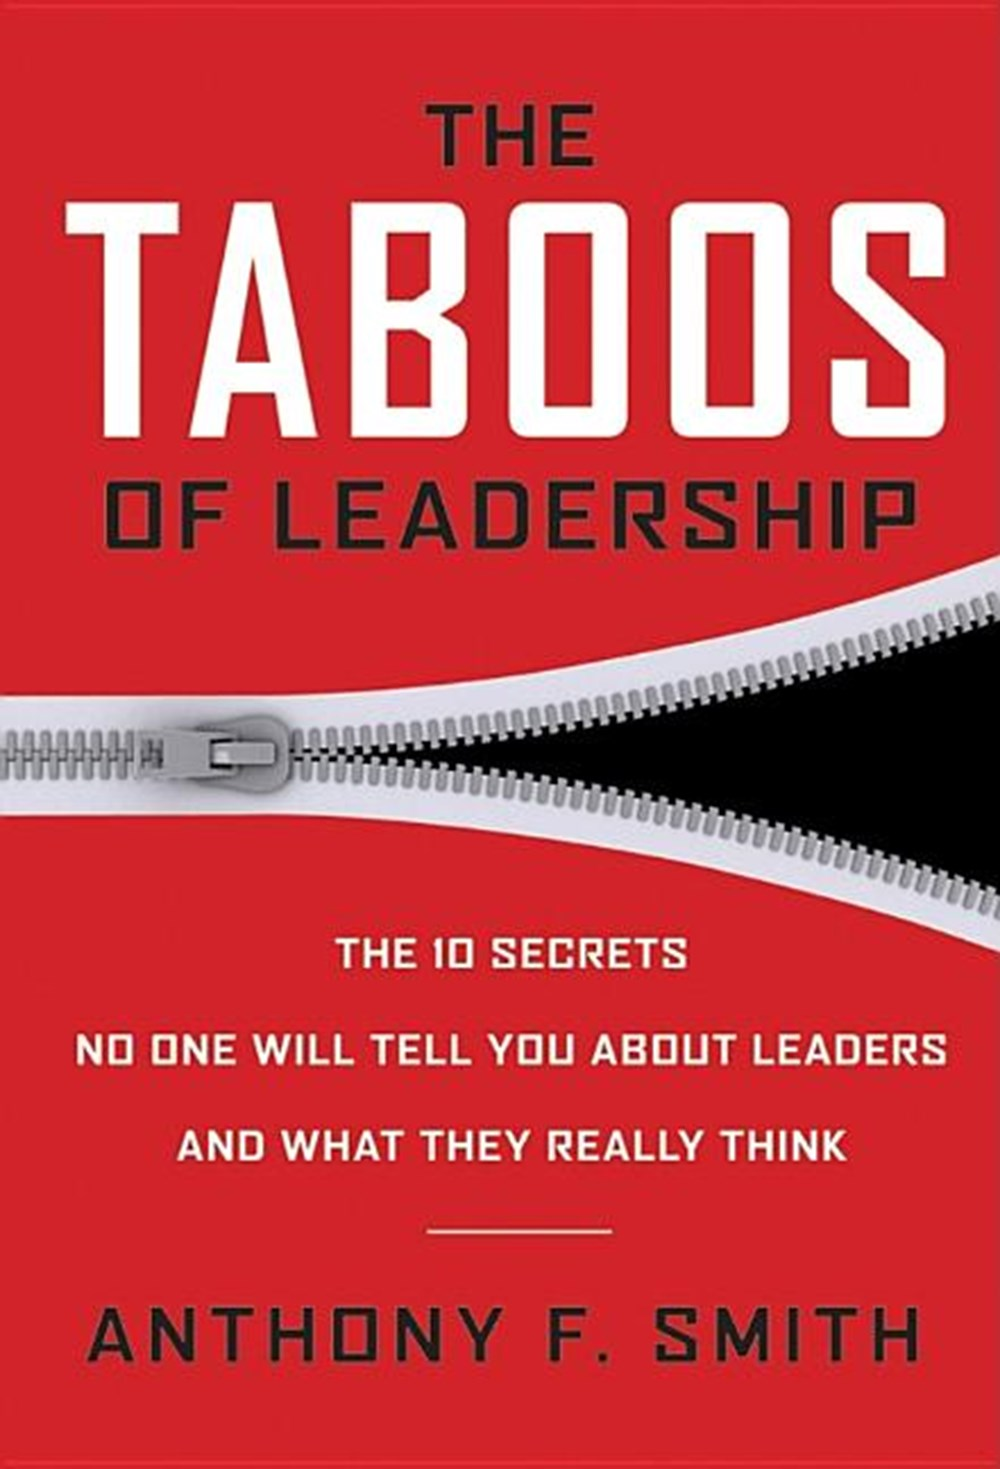 Taboos of Leadership The 10 Secrets No One Will Tell You about Leaders and What They Really Think